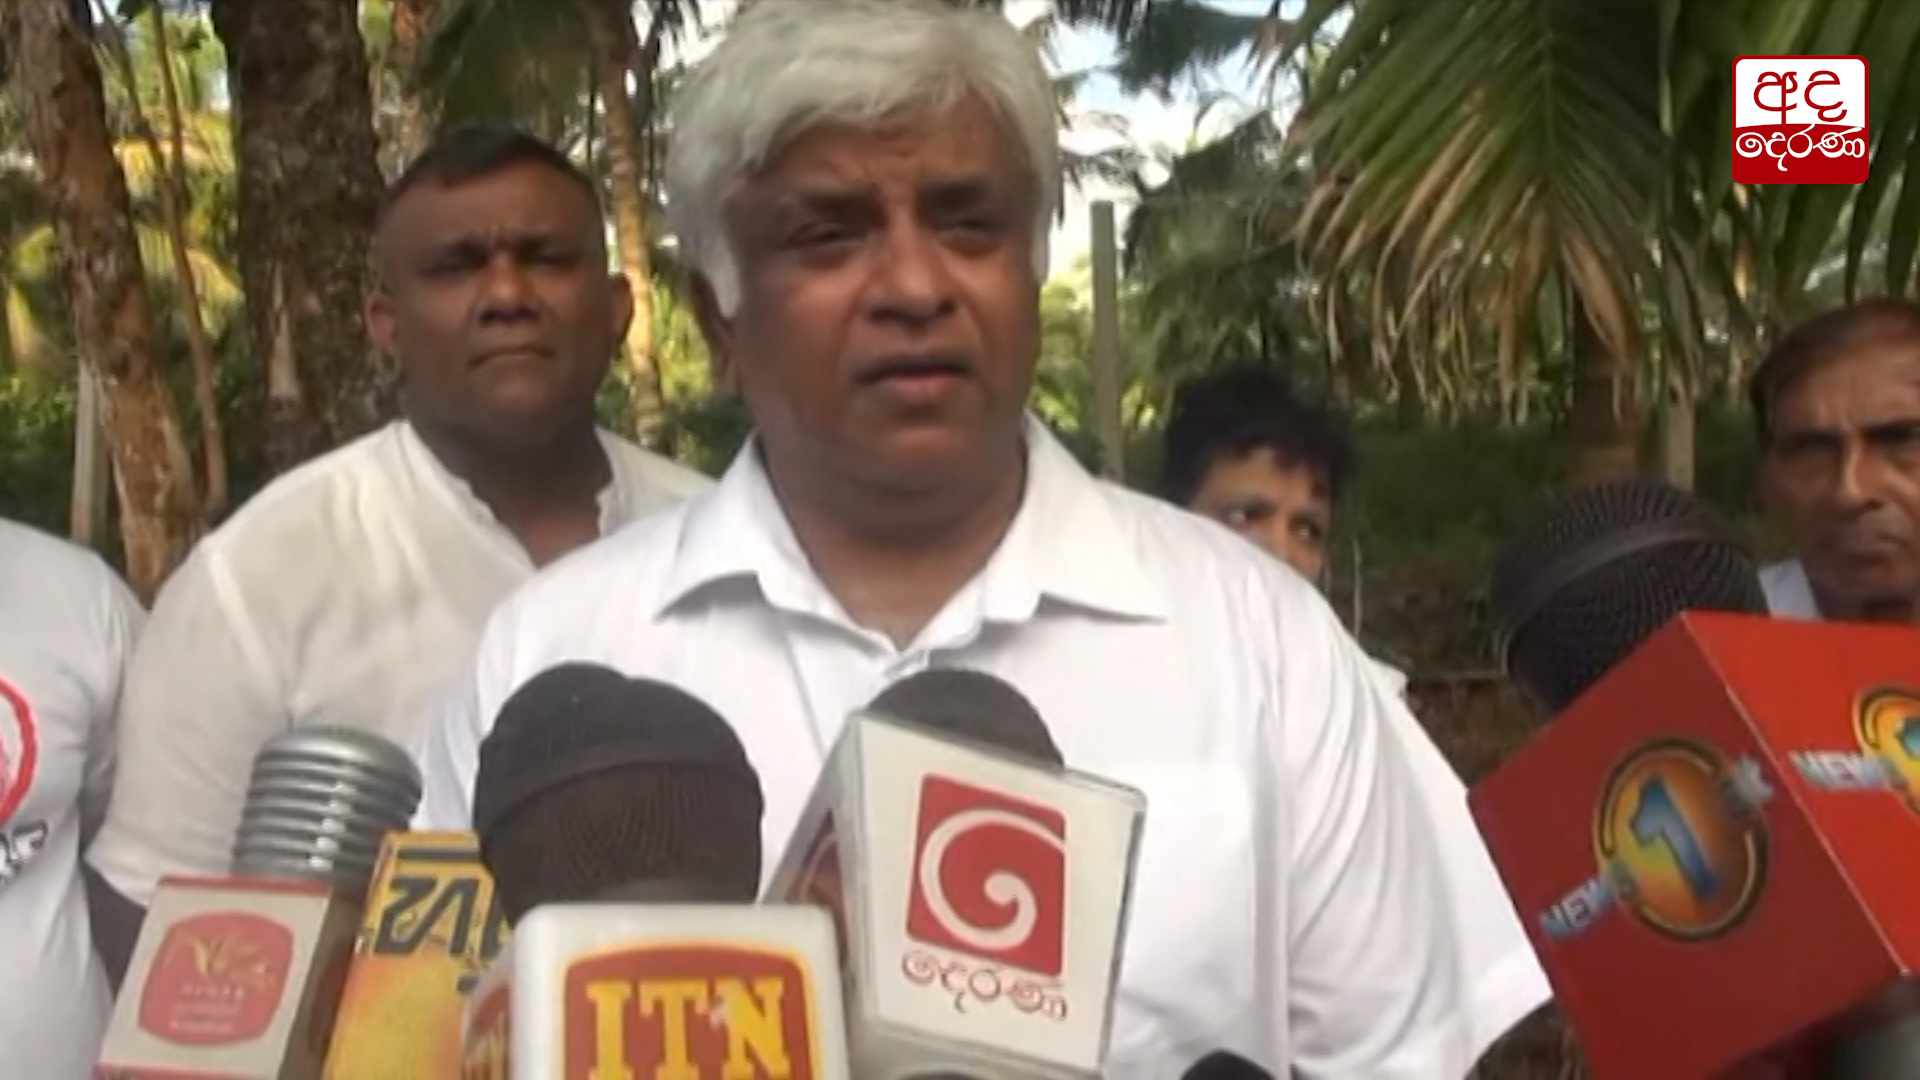 Cricket administration has no knowledge on resolving issues - Arjuna